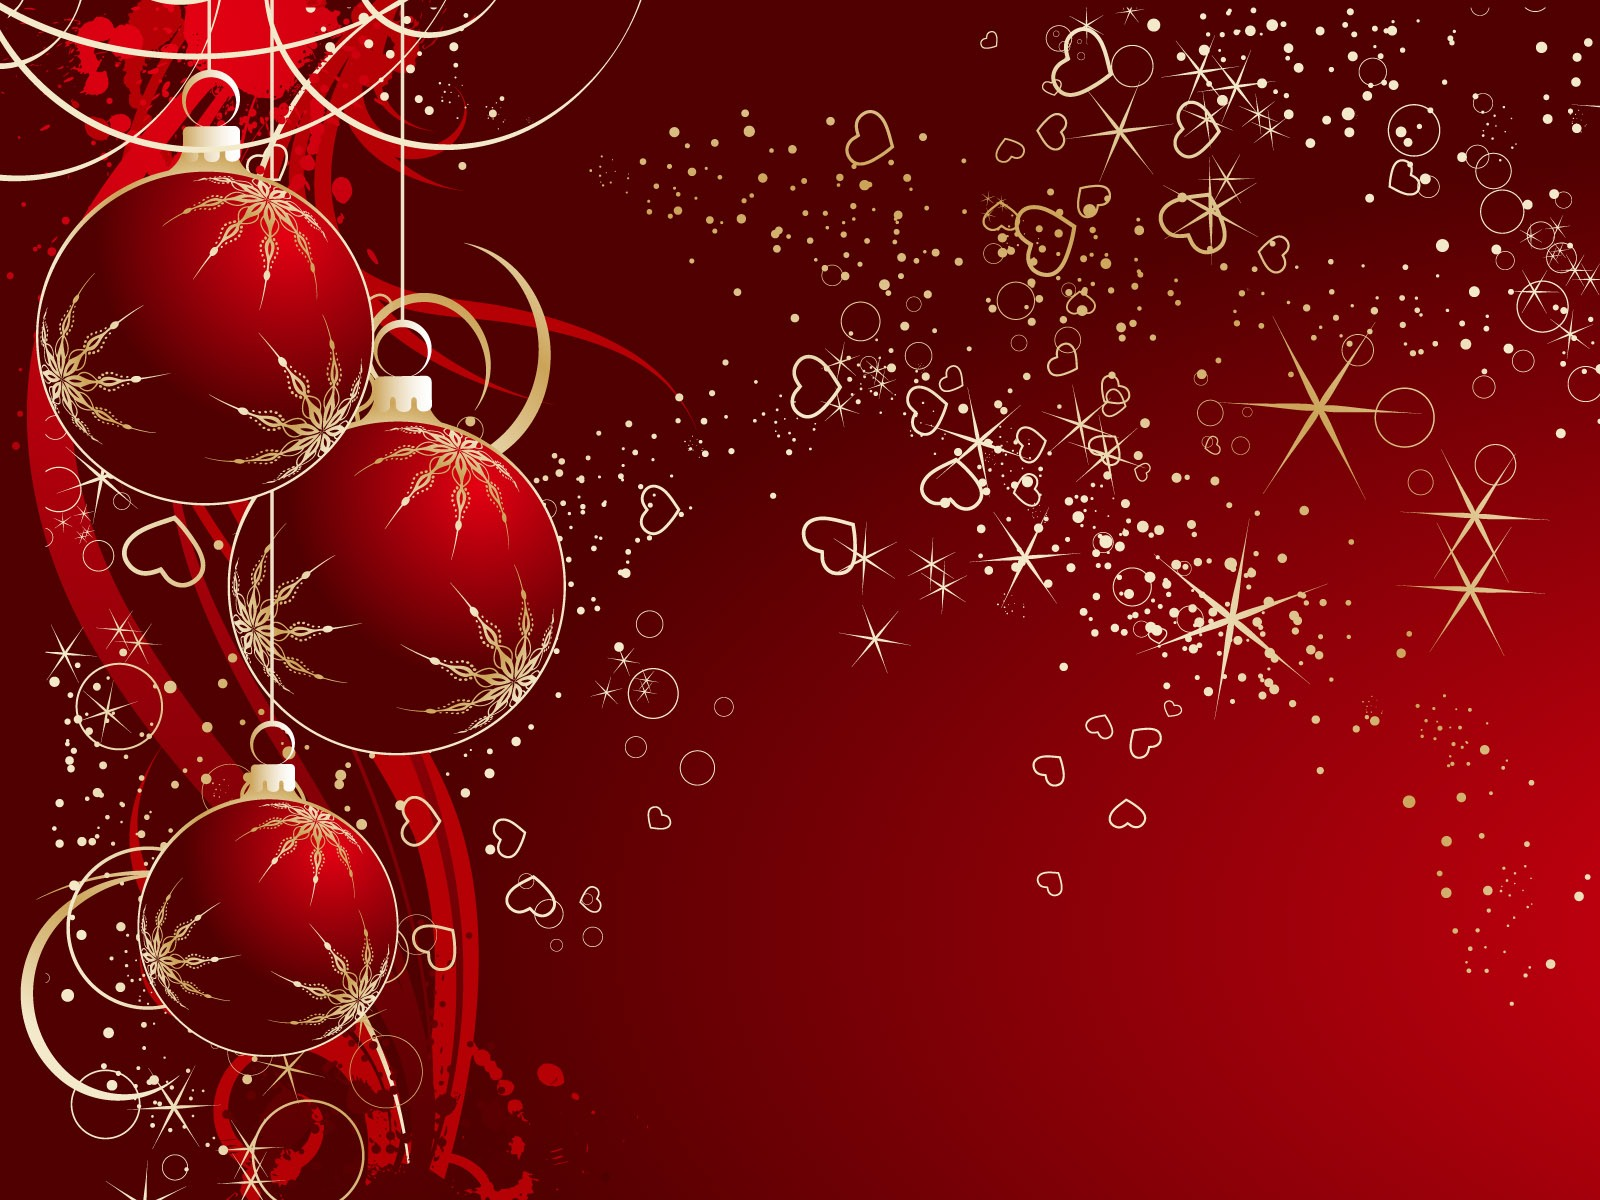 40 High Quality Christmas Wallpapers And E Cards